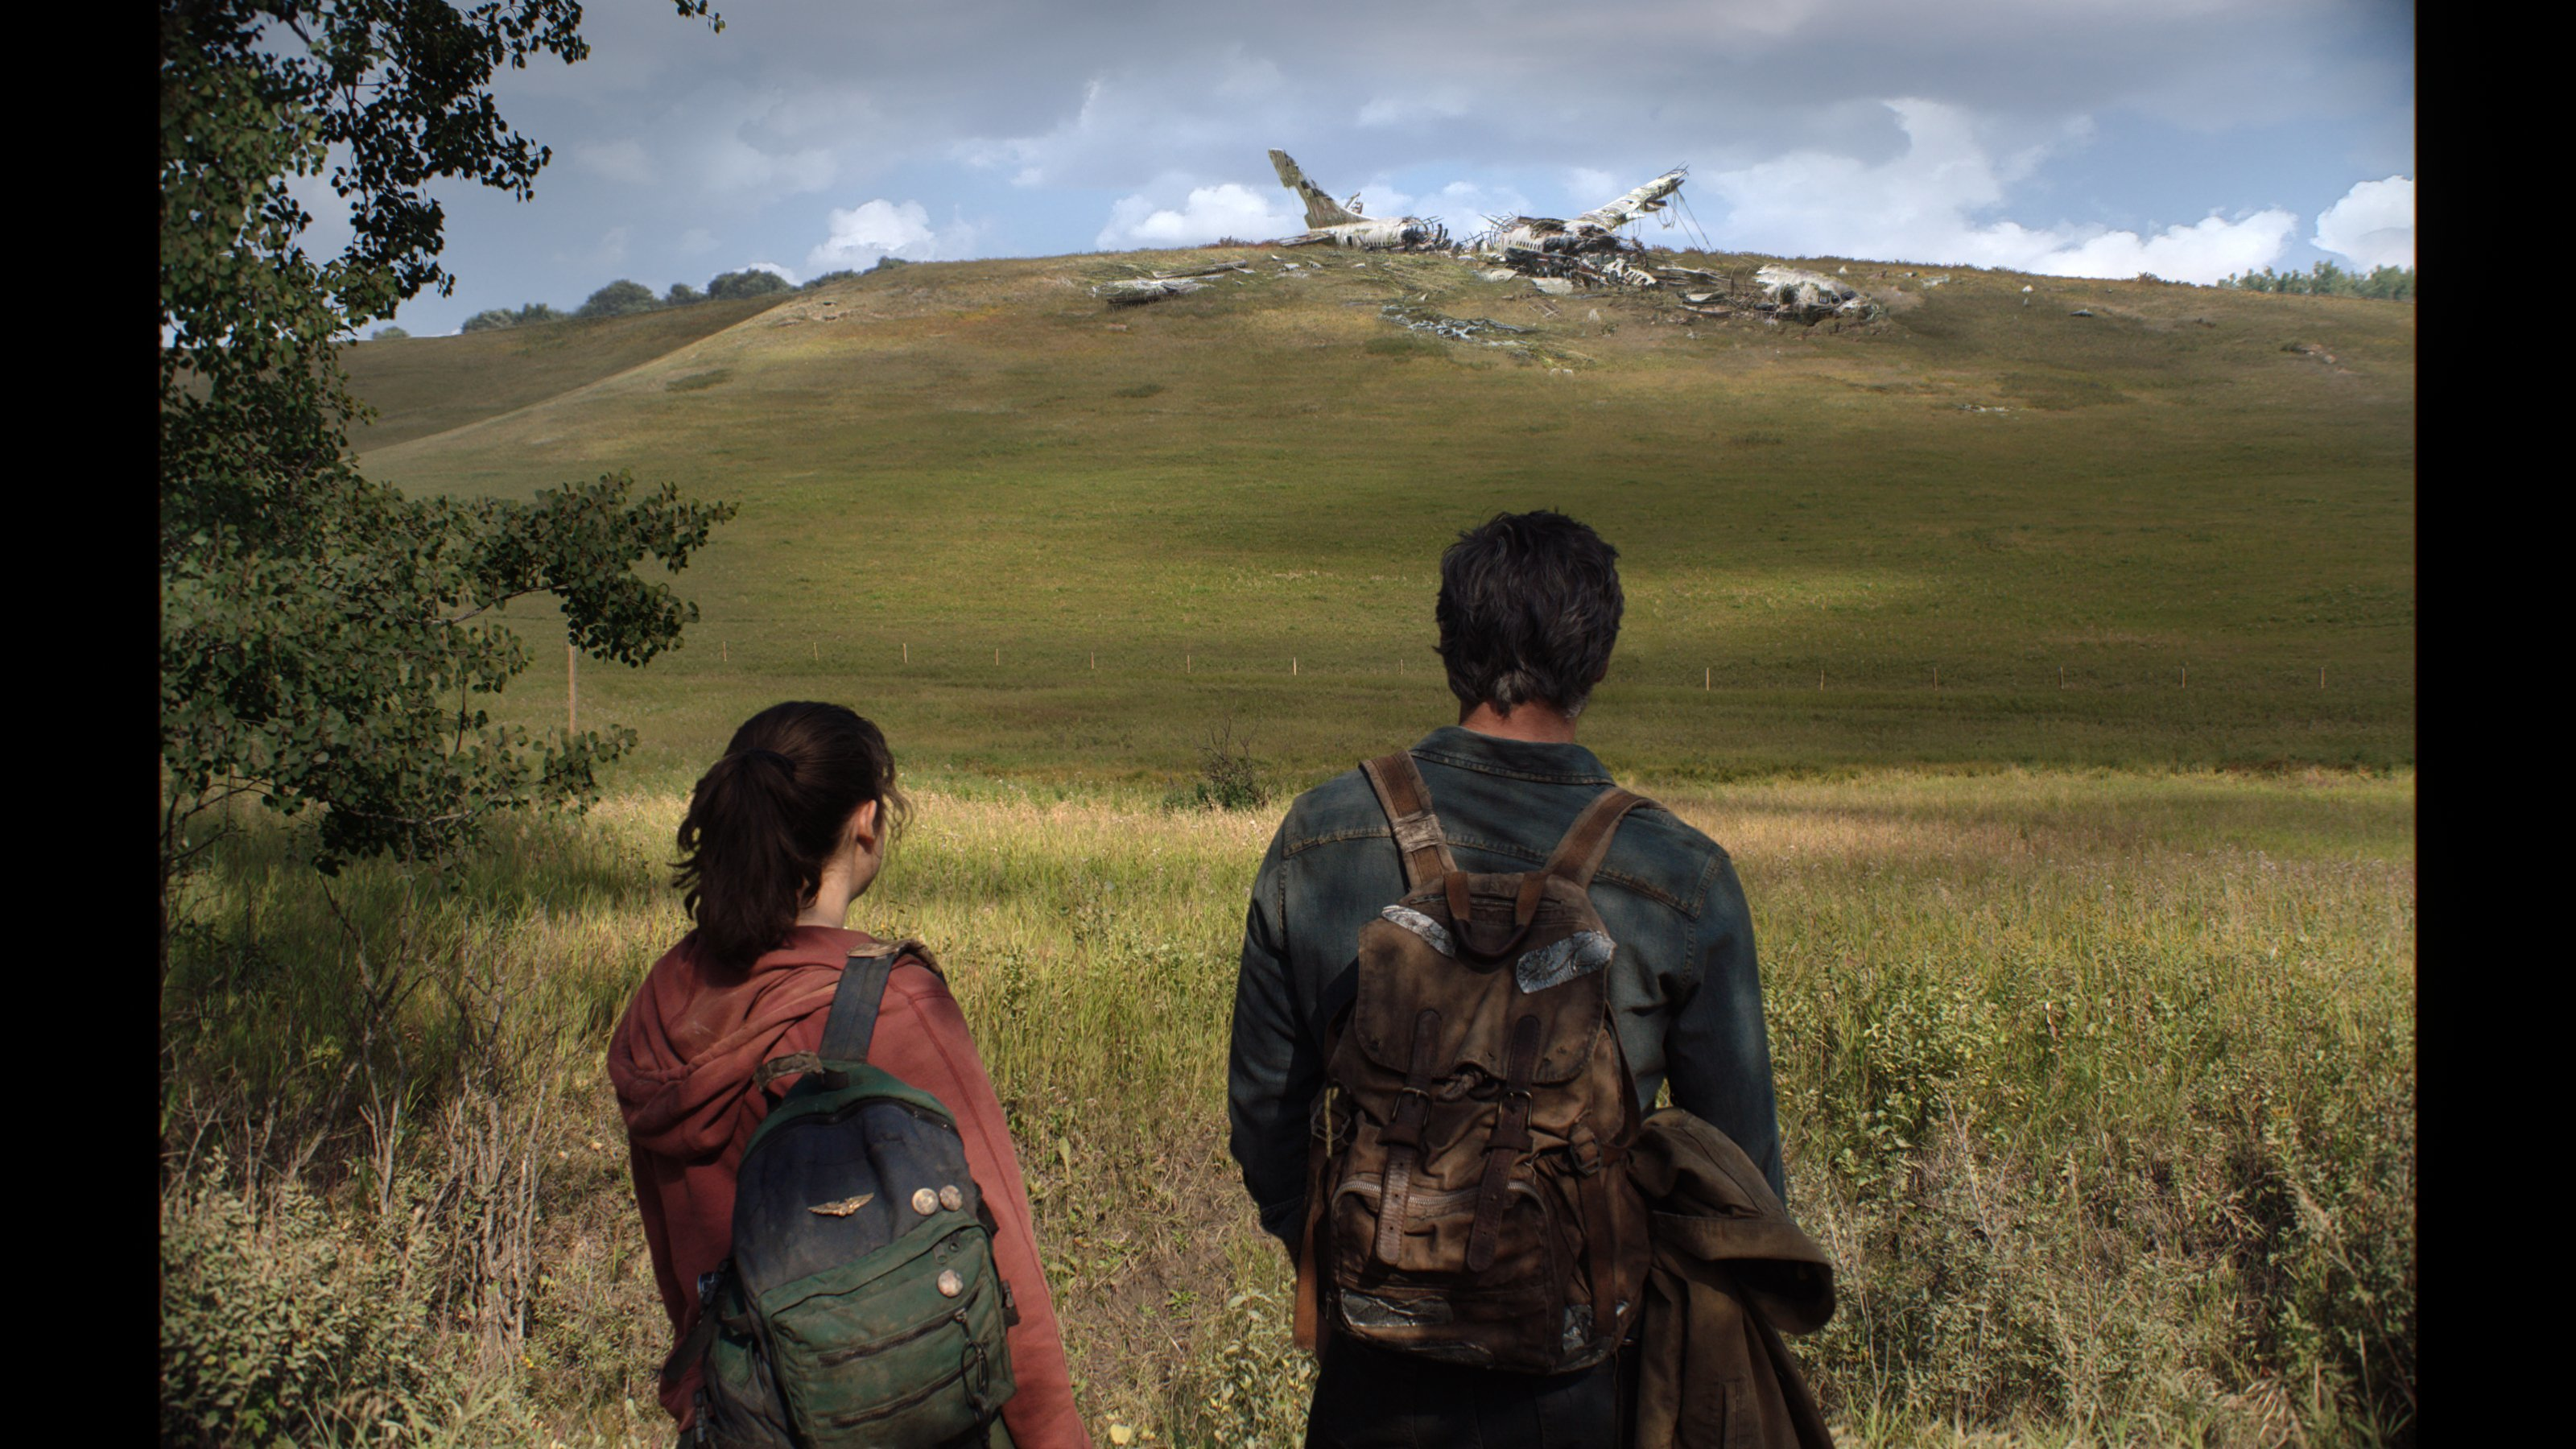 Joel and Ellie stare at a downed airplane in The Last of Us TV series